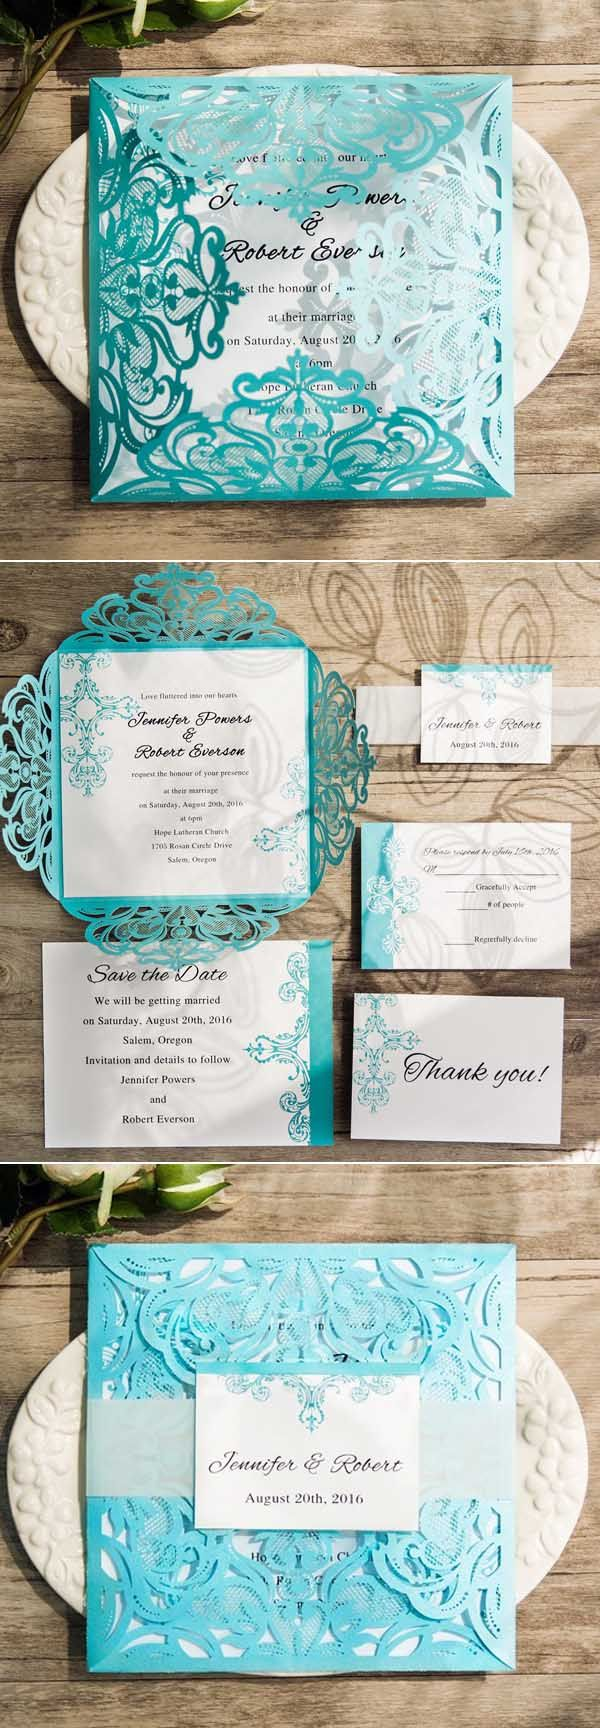 Awesome Ideas For Your Tiffany Blue Themed Wedding Laser cut